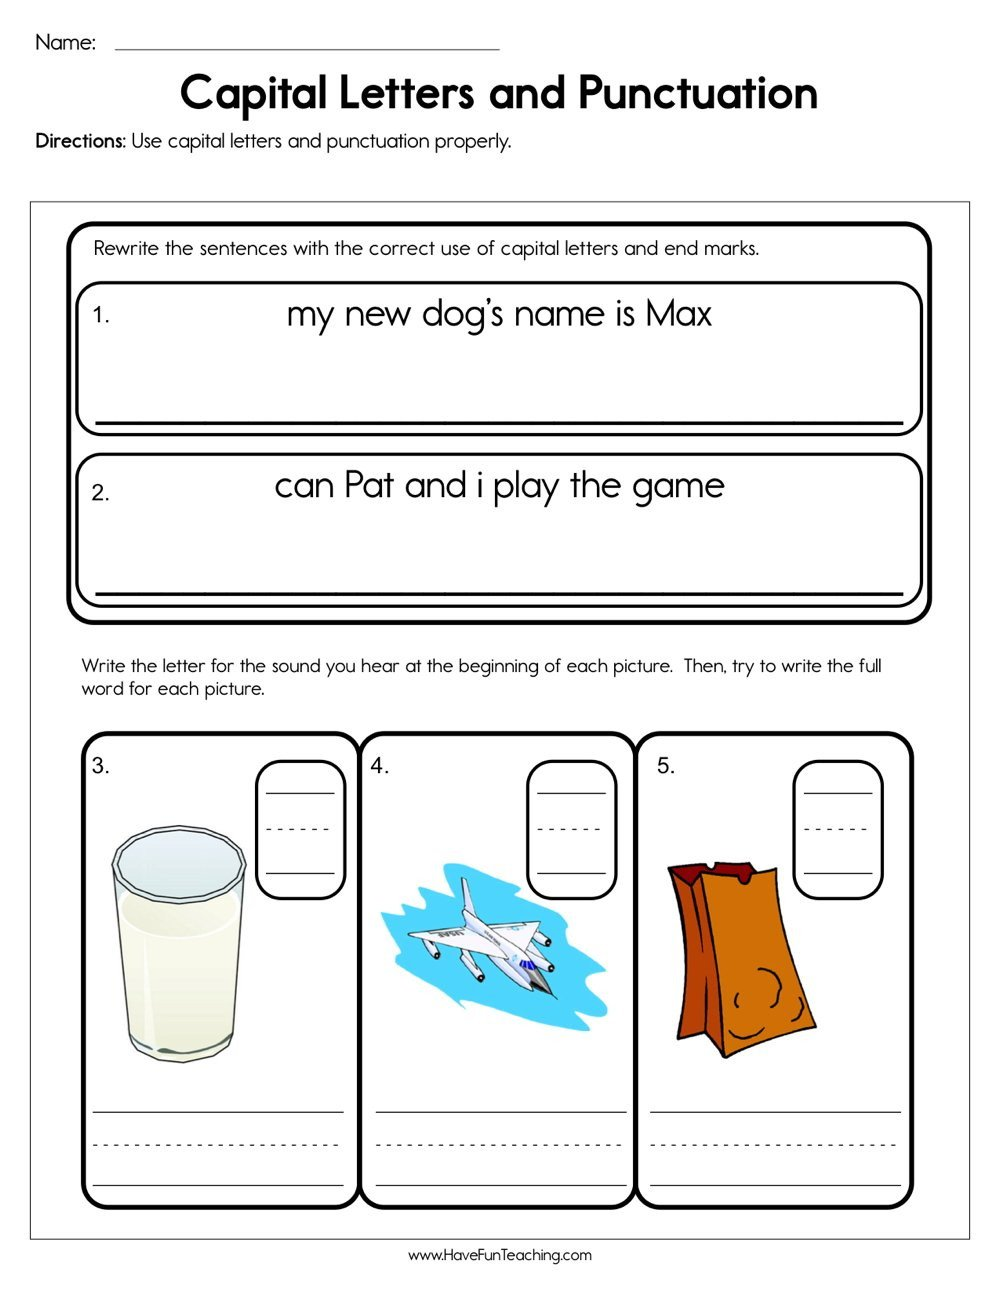 Punctuation Worksheets for Kindergarten Capital Letters and Punctuation Worksheet